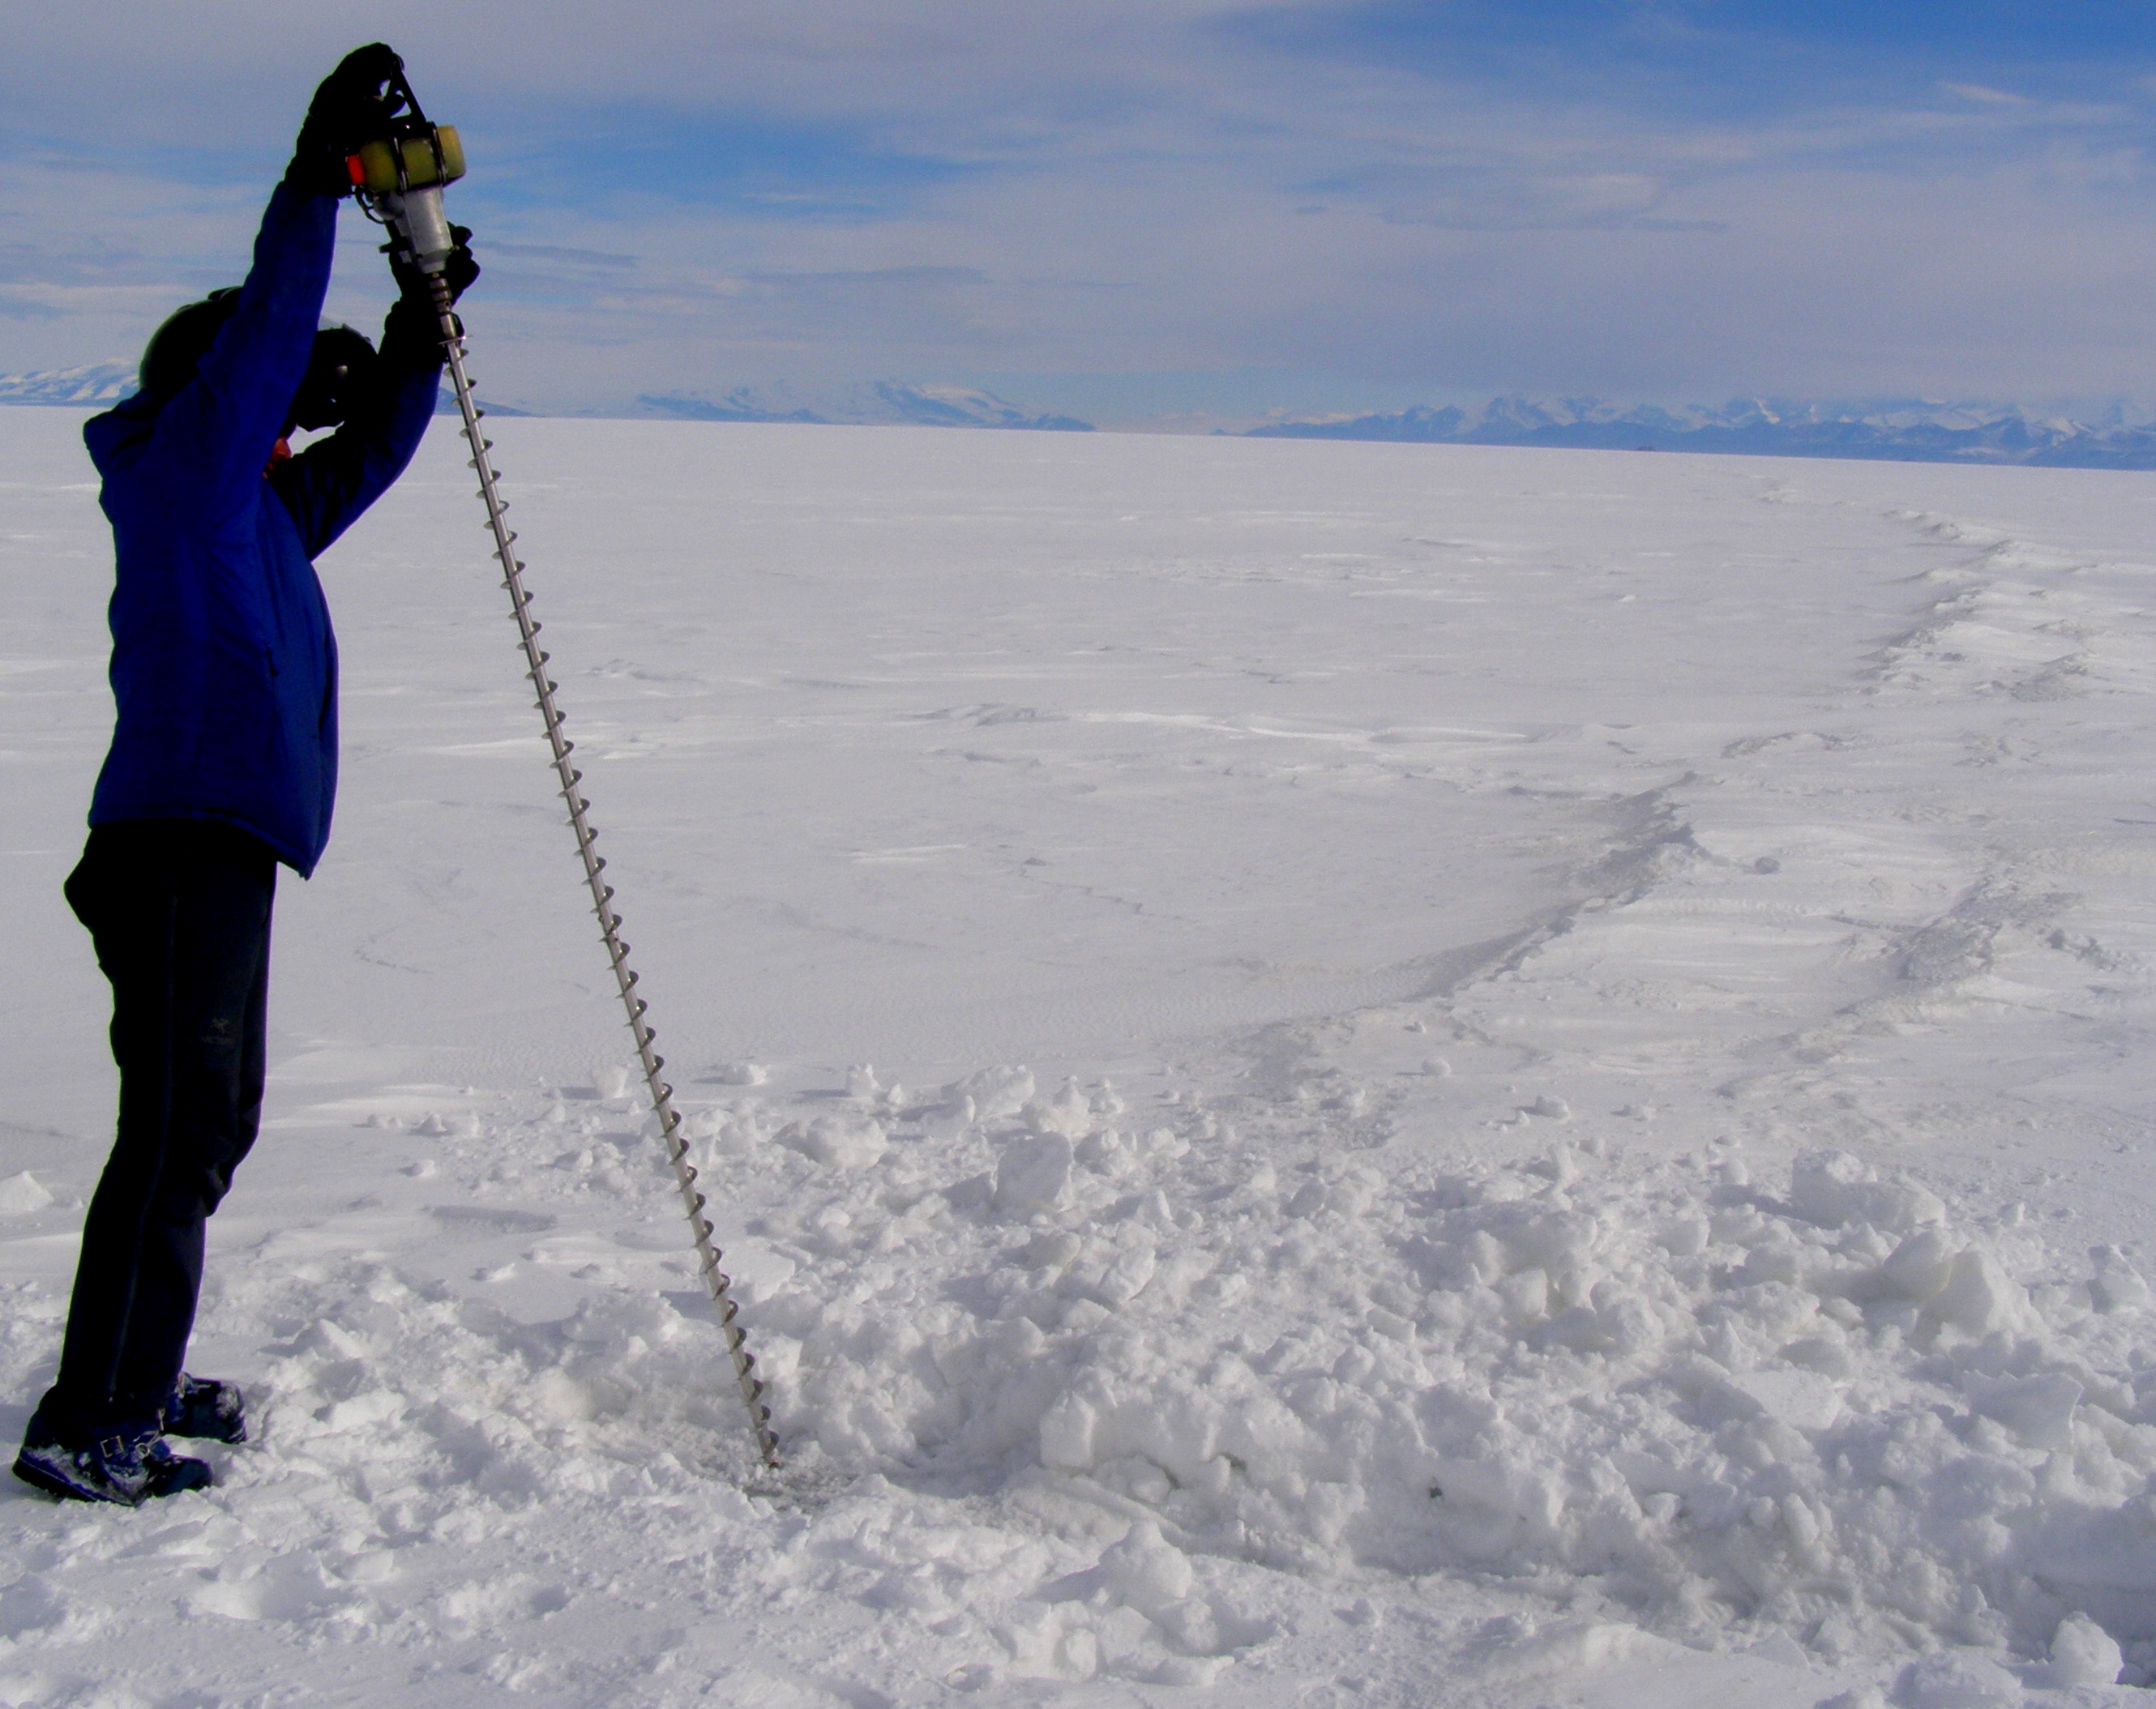 Matt drills to test the ice thickness across a crack